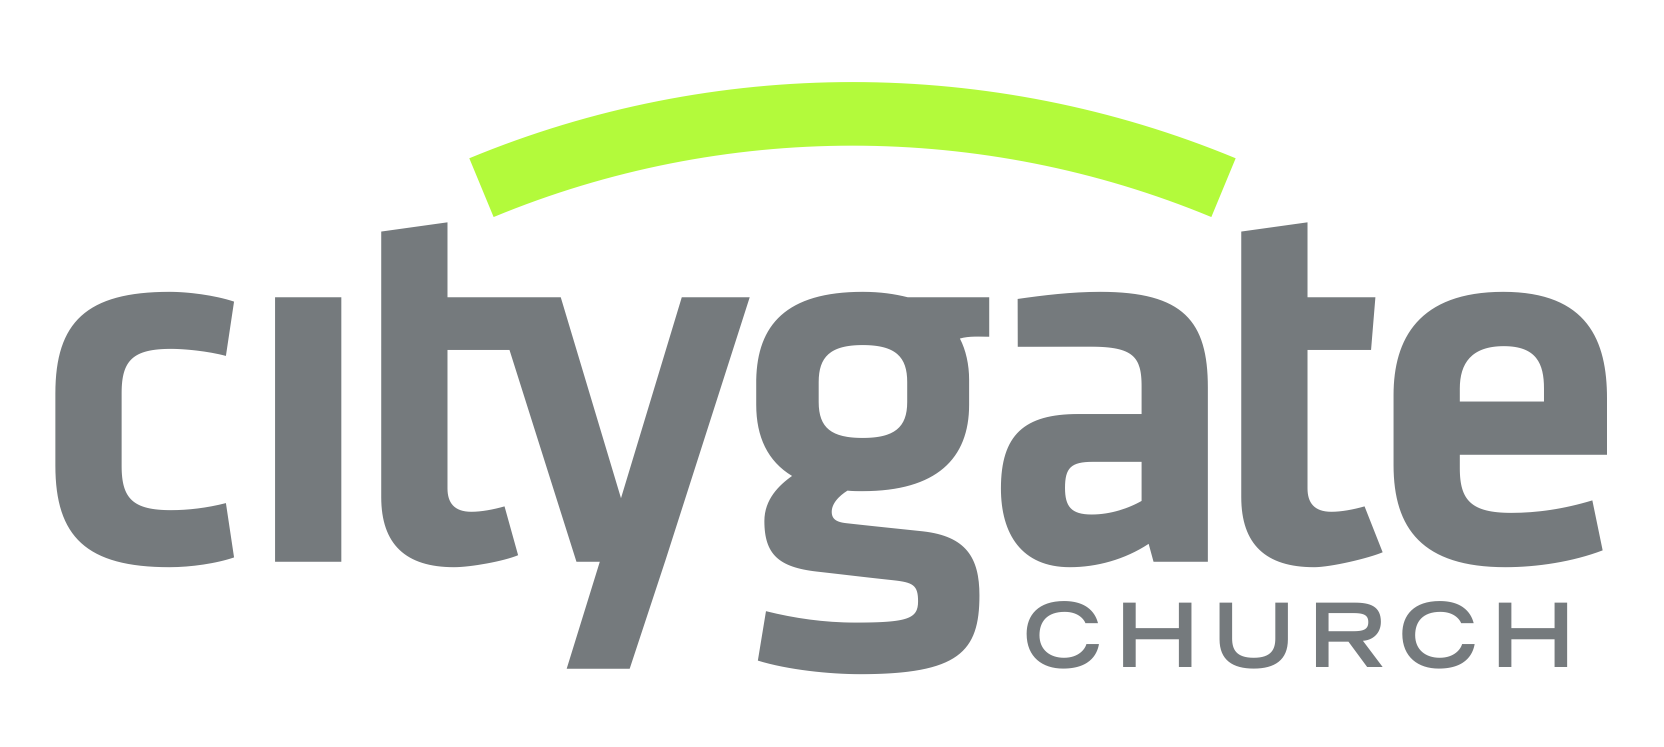 CityGate_Logo_Final-ID-e7a591f7-ec75-41c3-c78b-c0eac4facb59.png